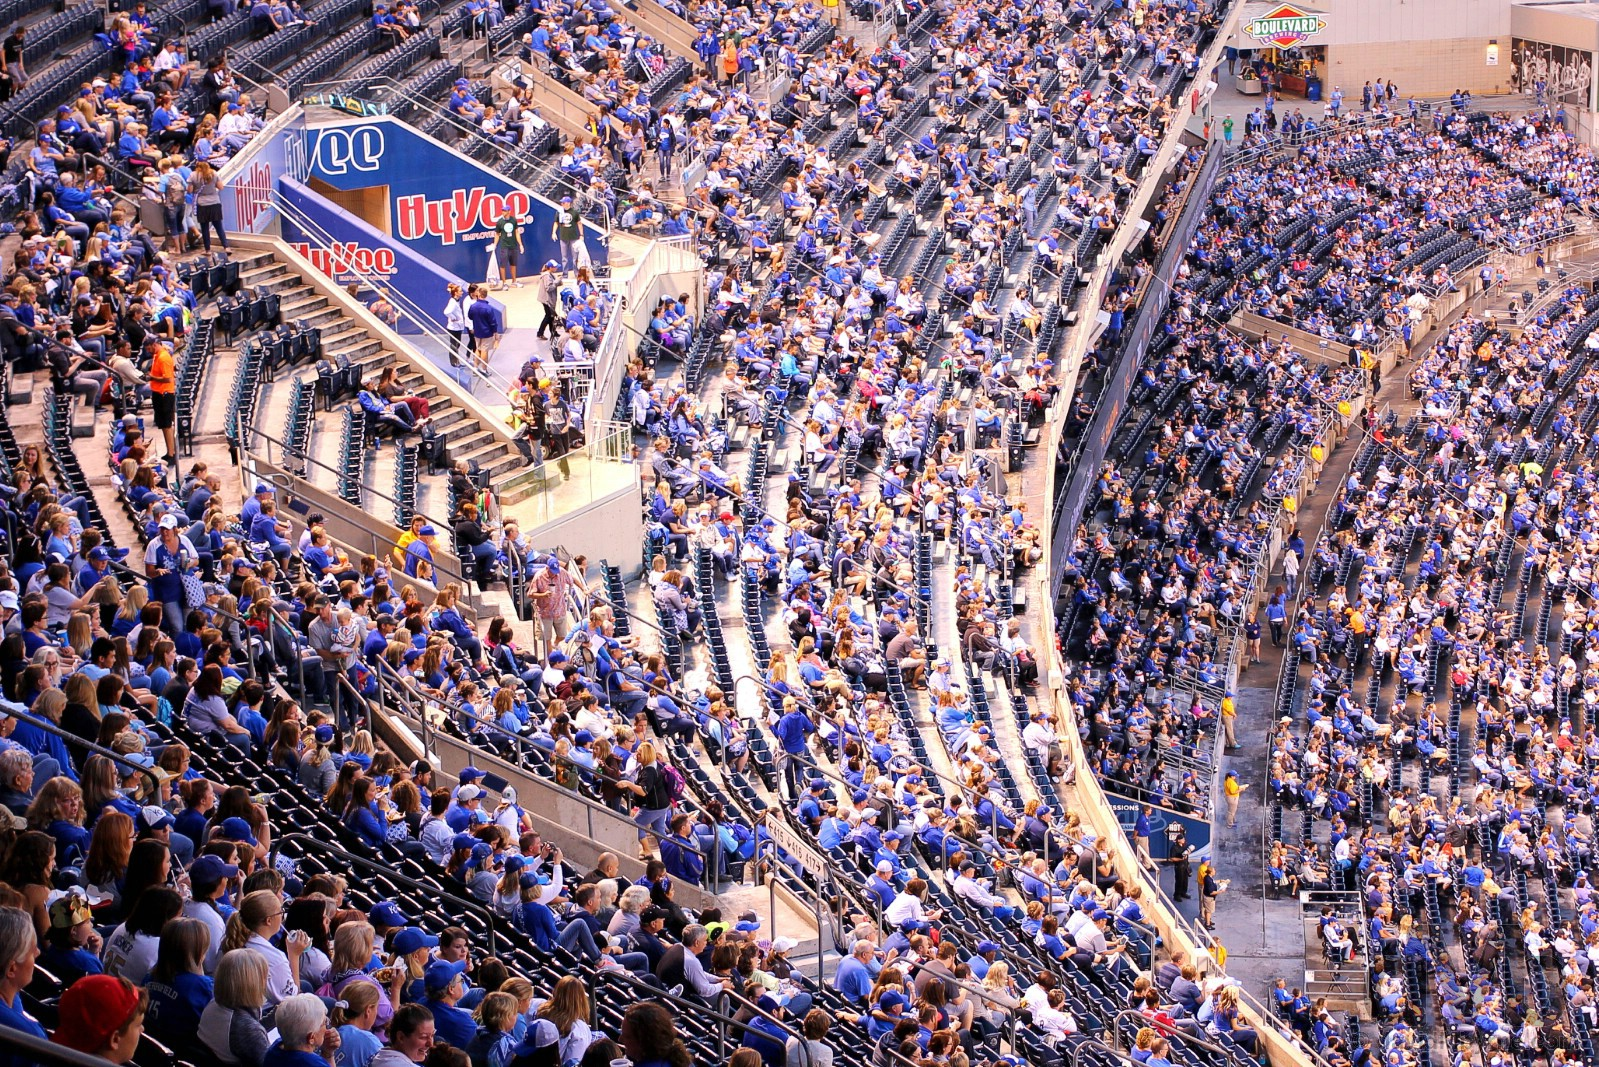 Royals Vs. White Sox, Kauffman Stadium, Kansas City, Missouri. September 16, 2016.